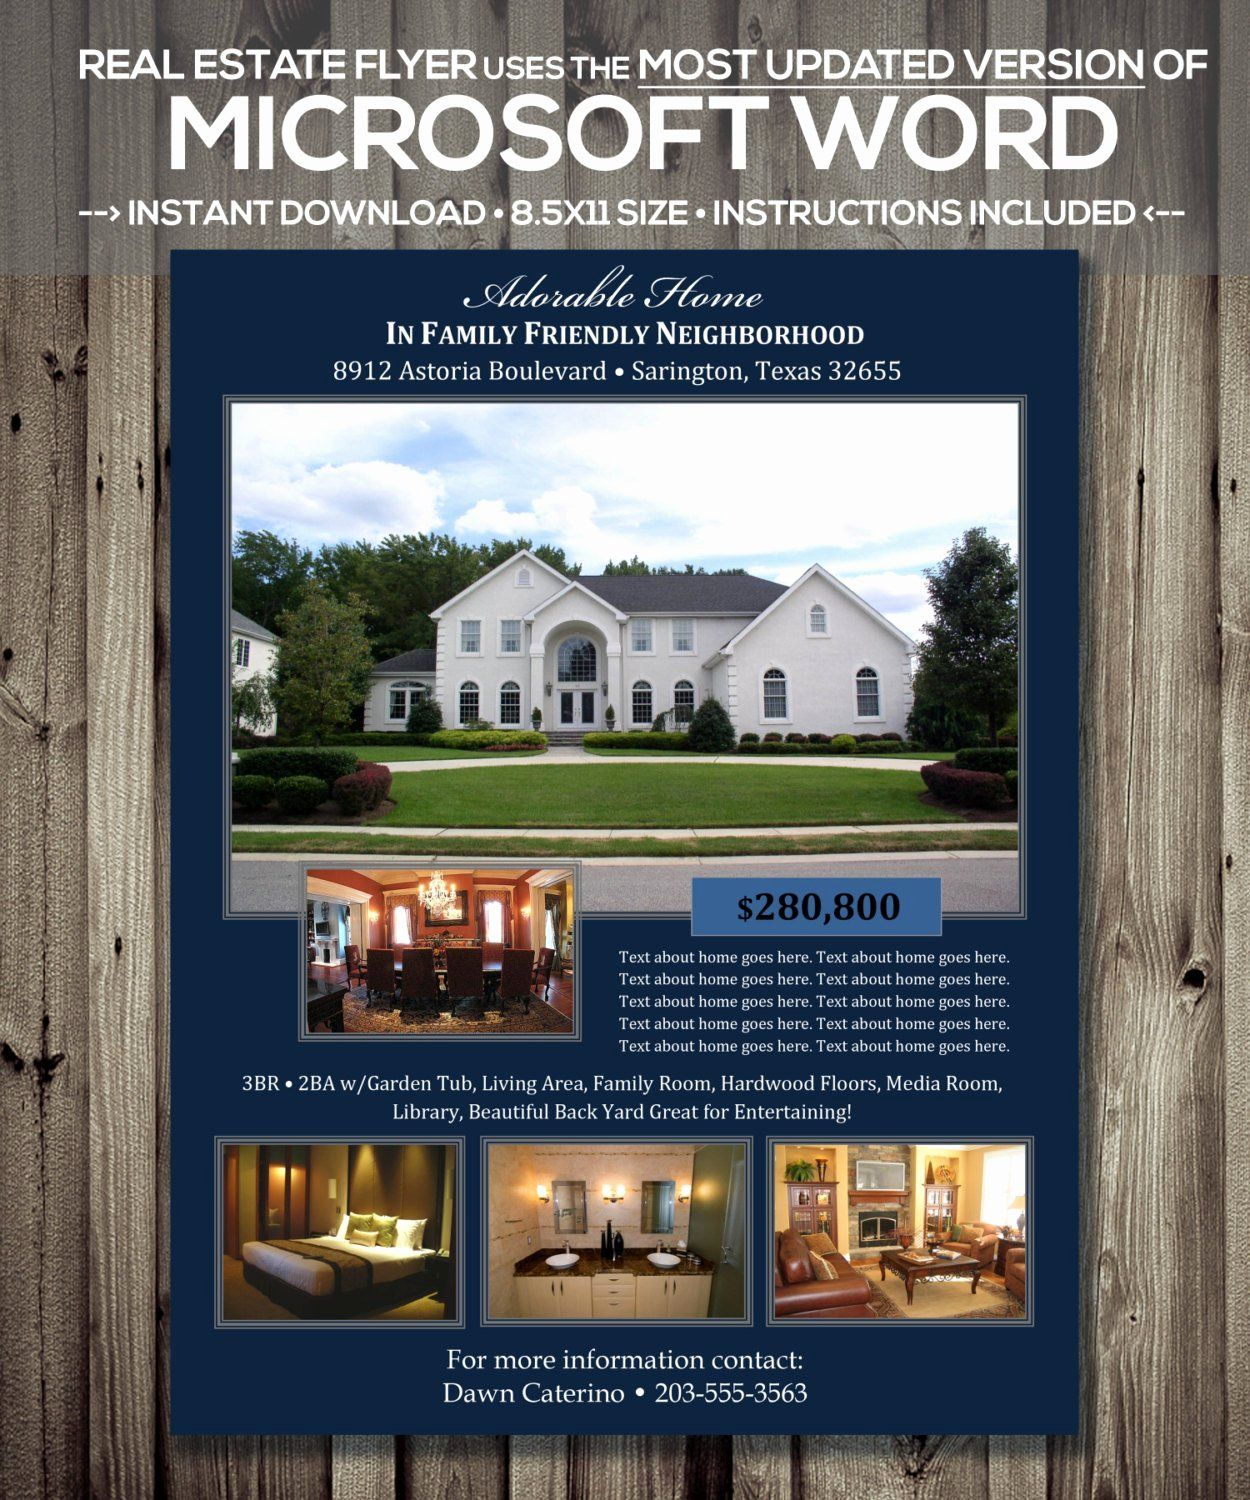 House for sale brochure template new real estate flyer